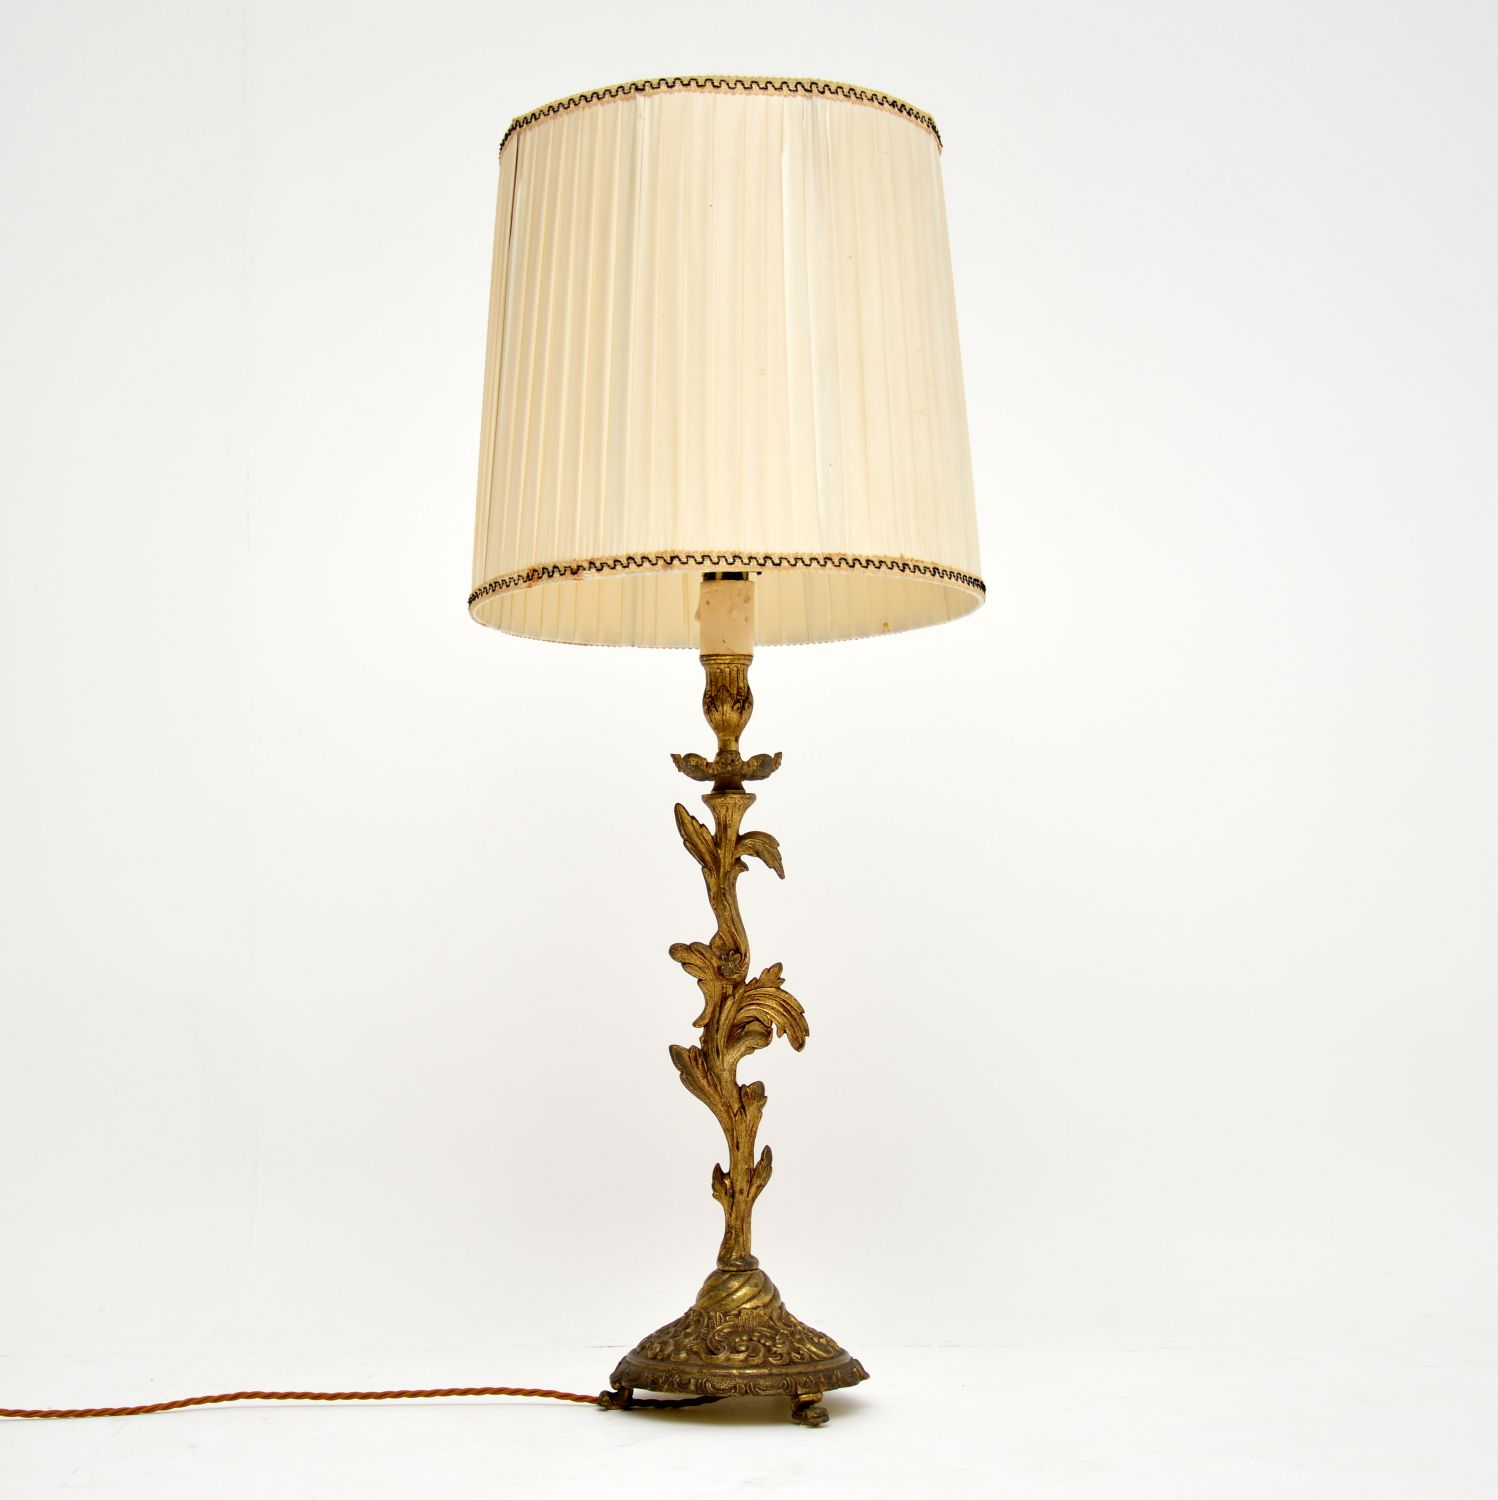 antique gilt metal table lamp